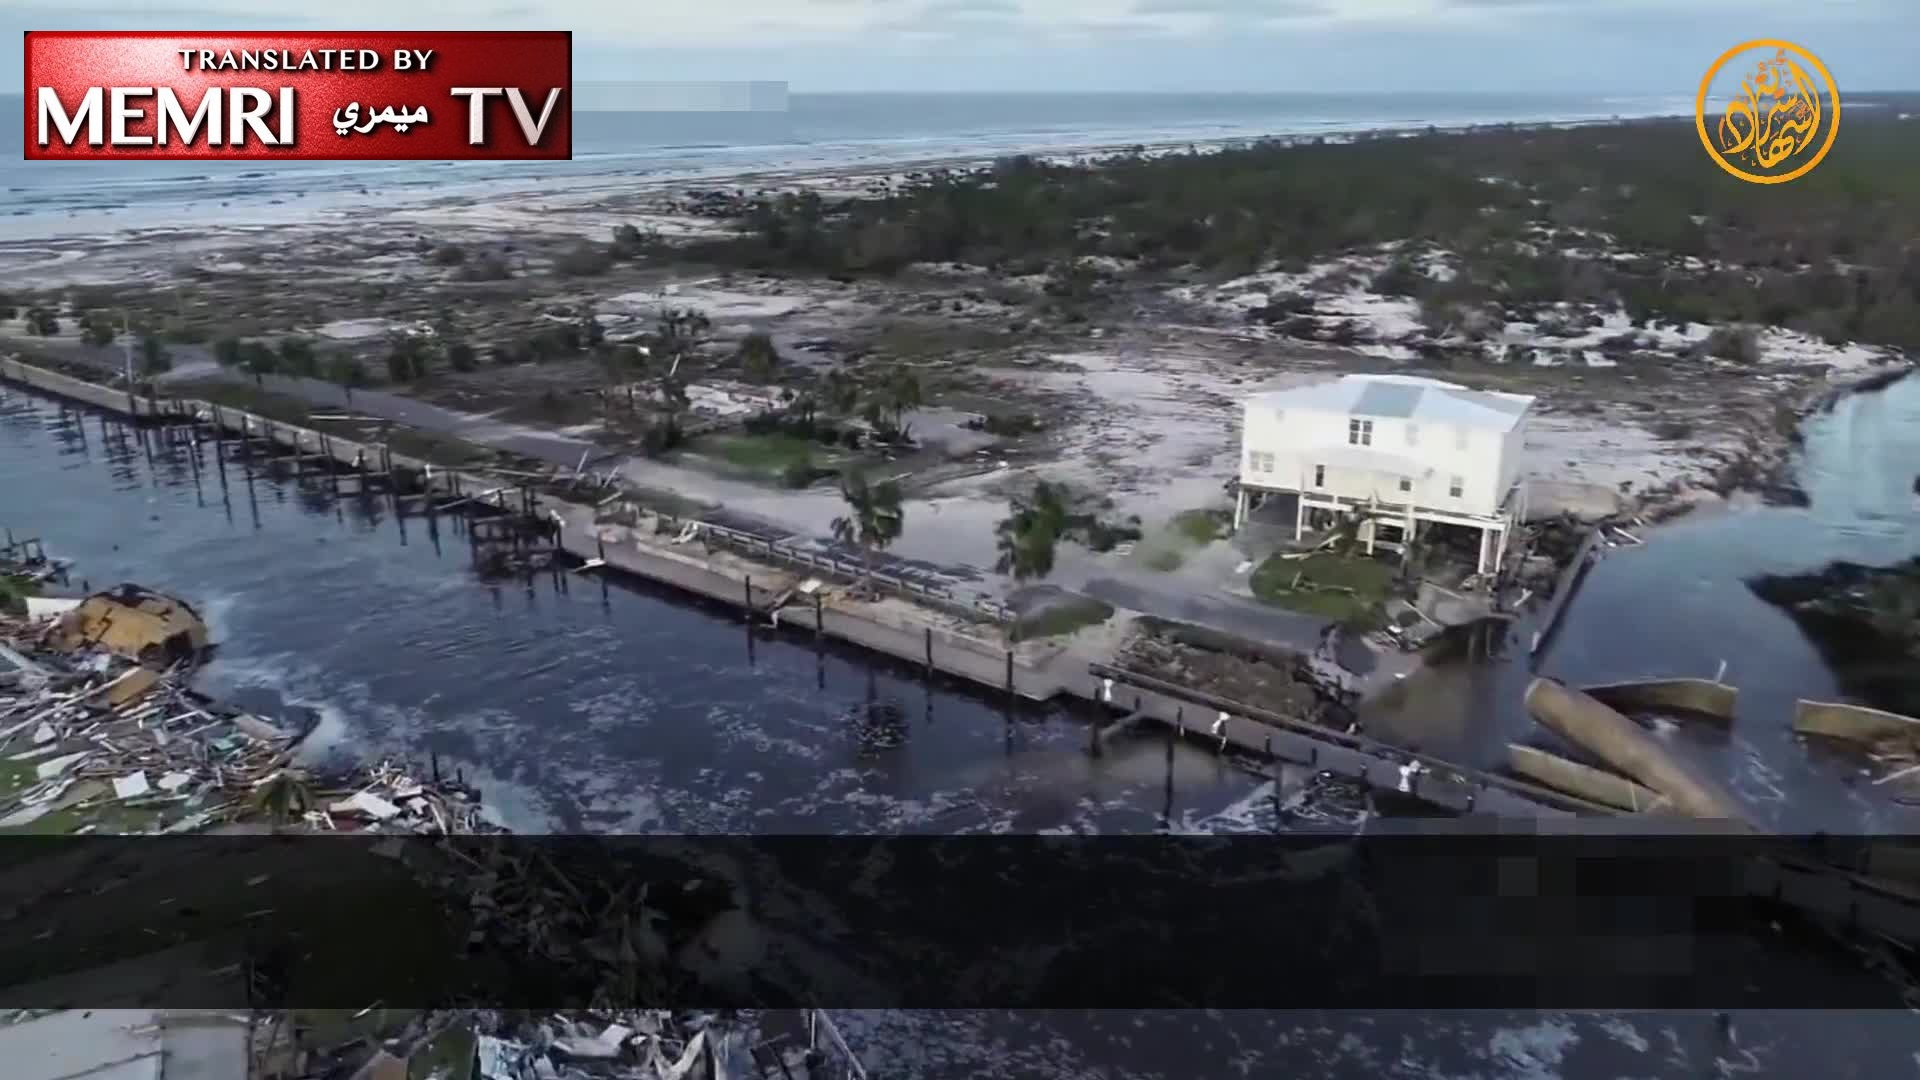 Pro-ISIS Video Depicts Hurricane Michael as Divine Punishment of the U.S.